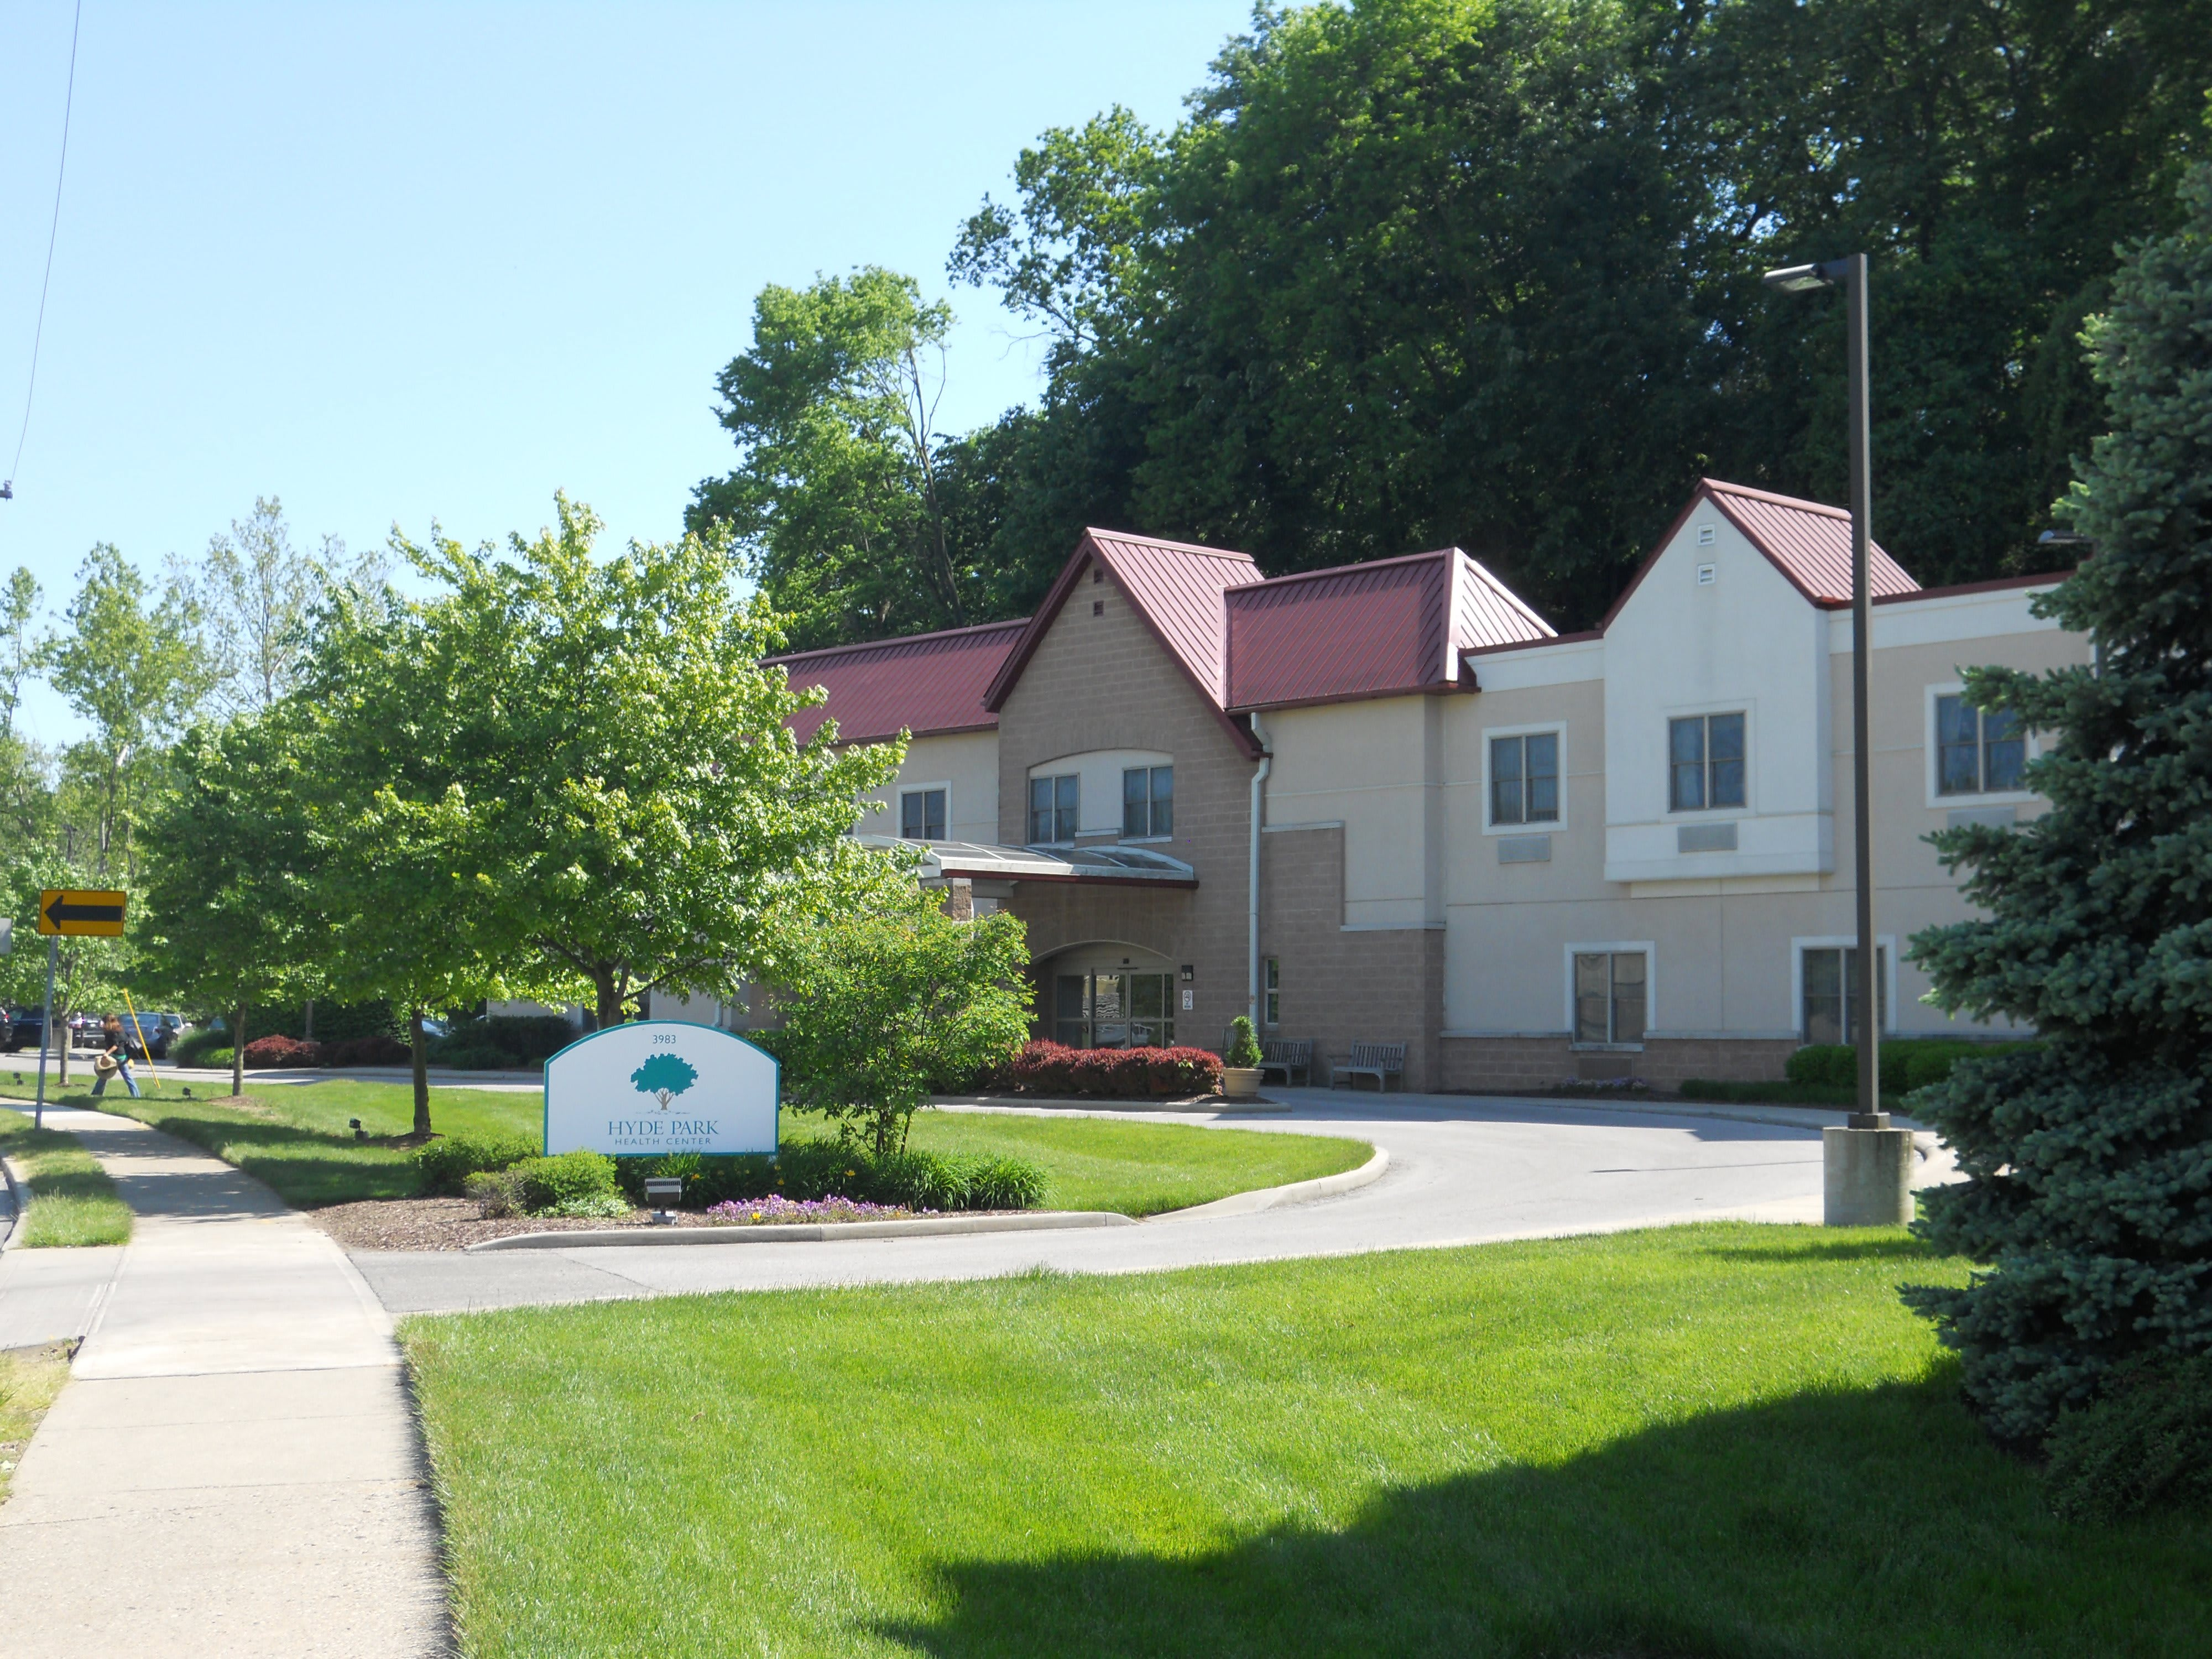 Photo 1 of Hyde Park Health Center - Assisted Living & Memory Care